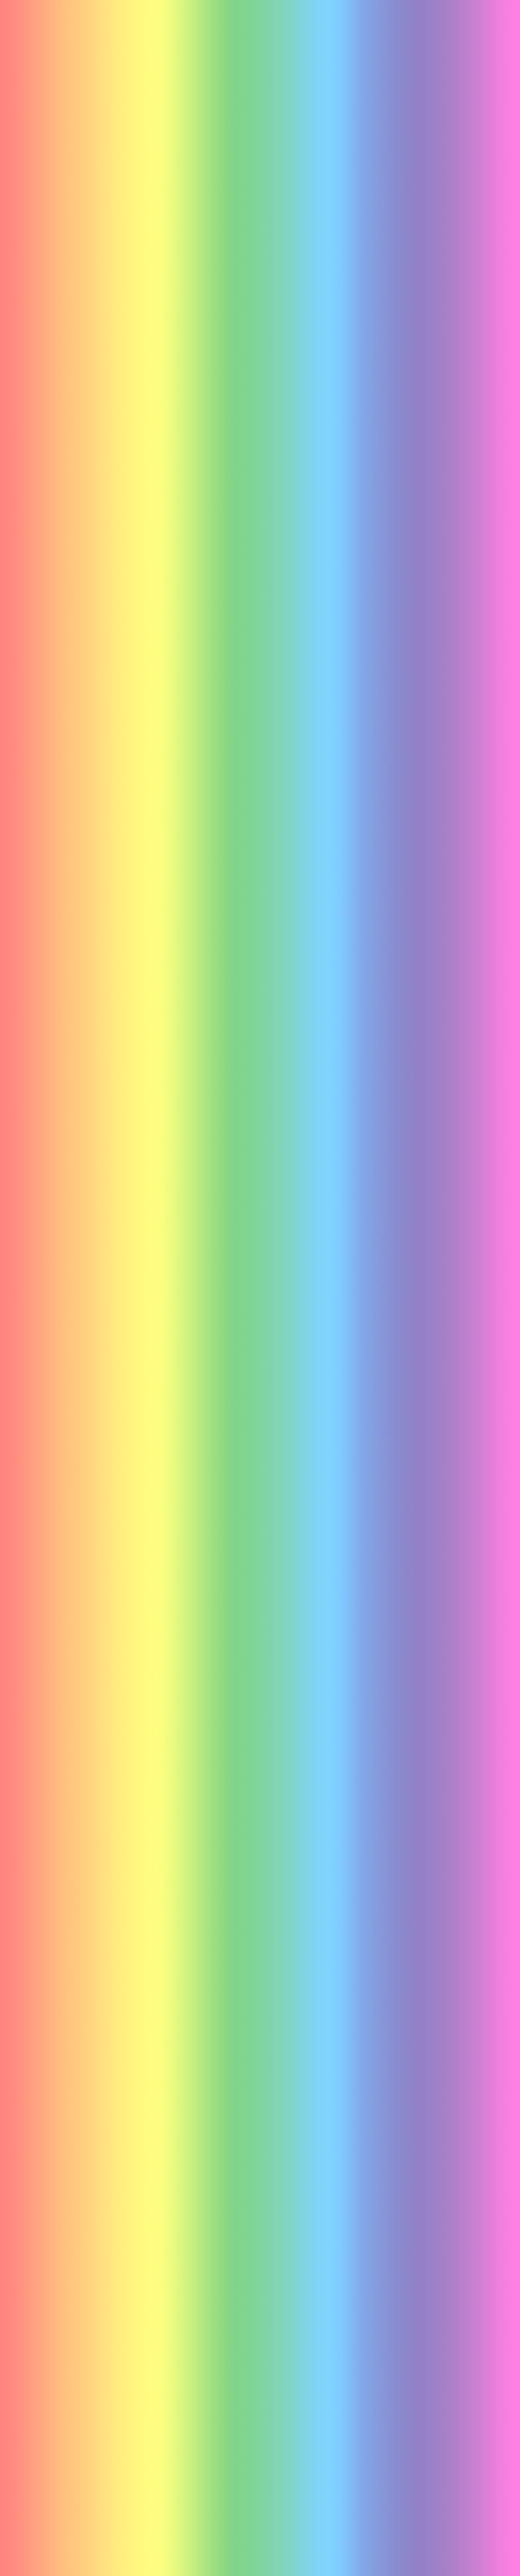 Pastel Rainbow Gradient Background by rainbowpanda101 on ...